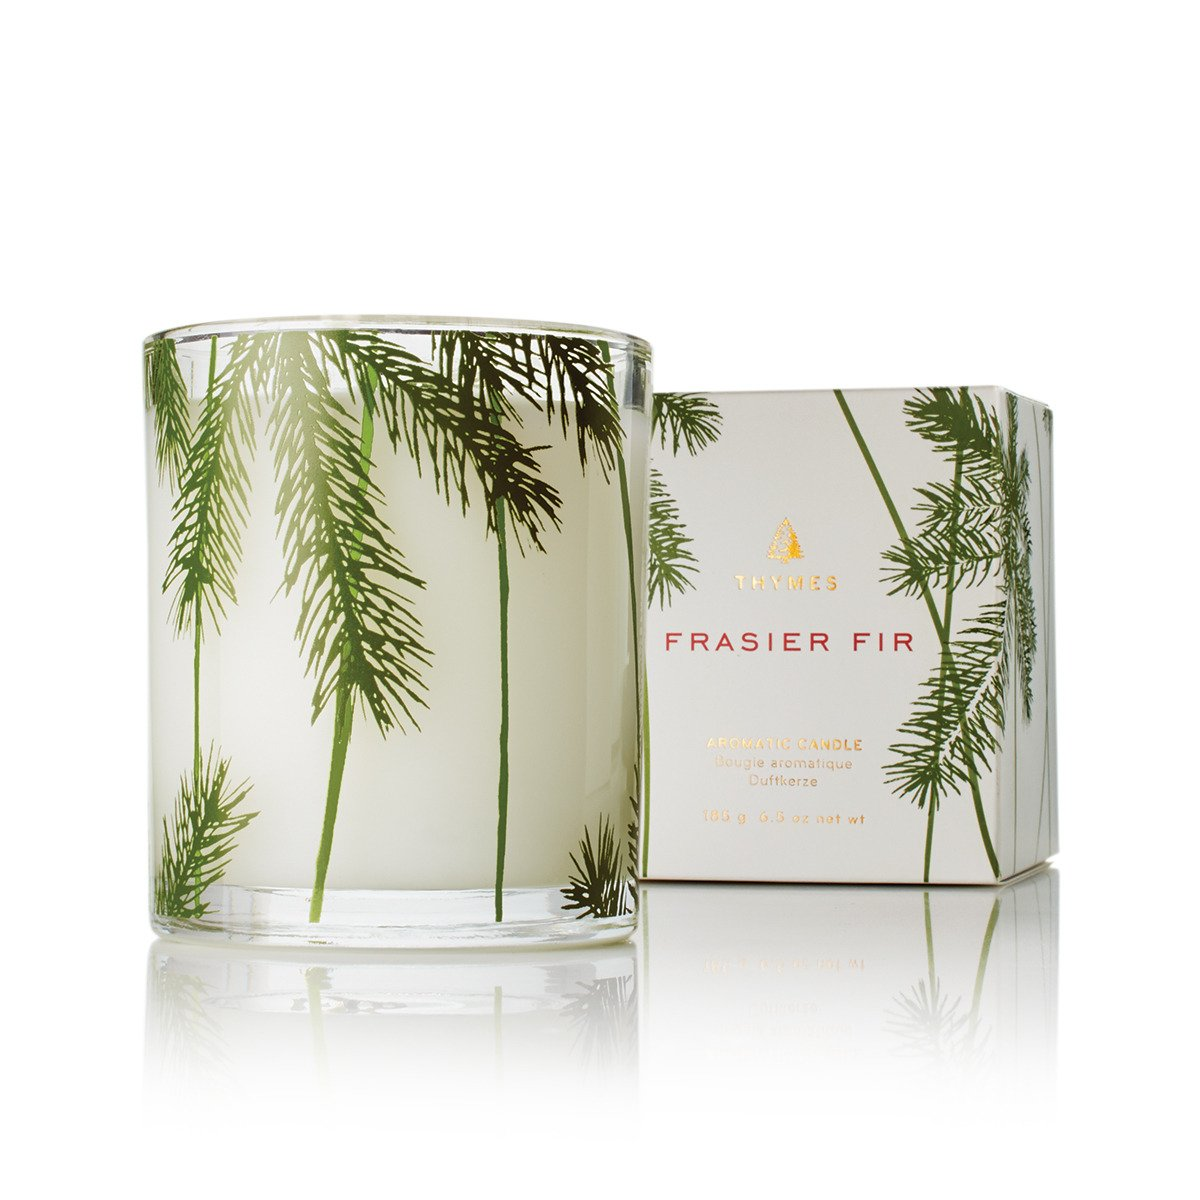 Thymes Frasier Fir, 6.5 oz, White